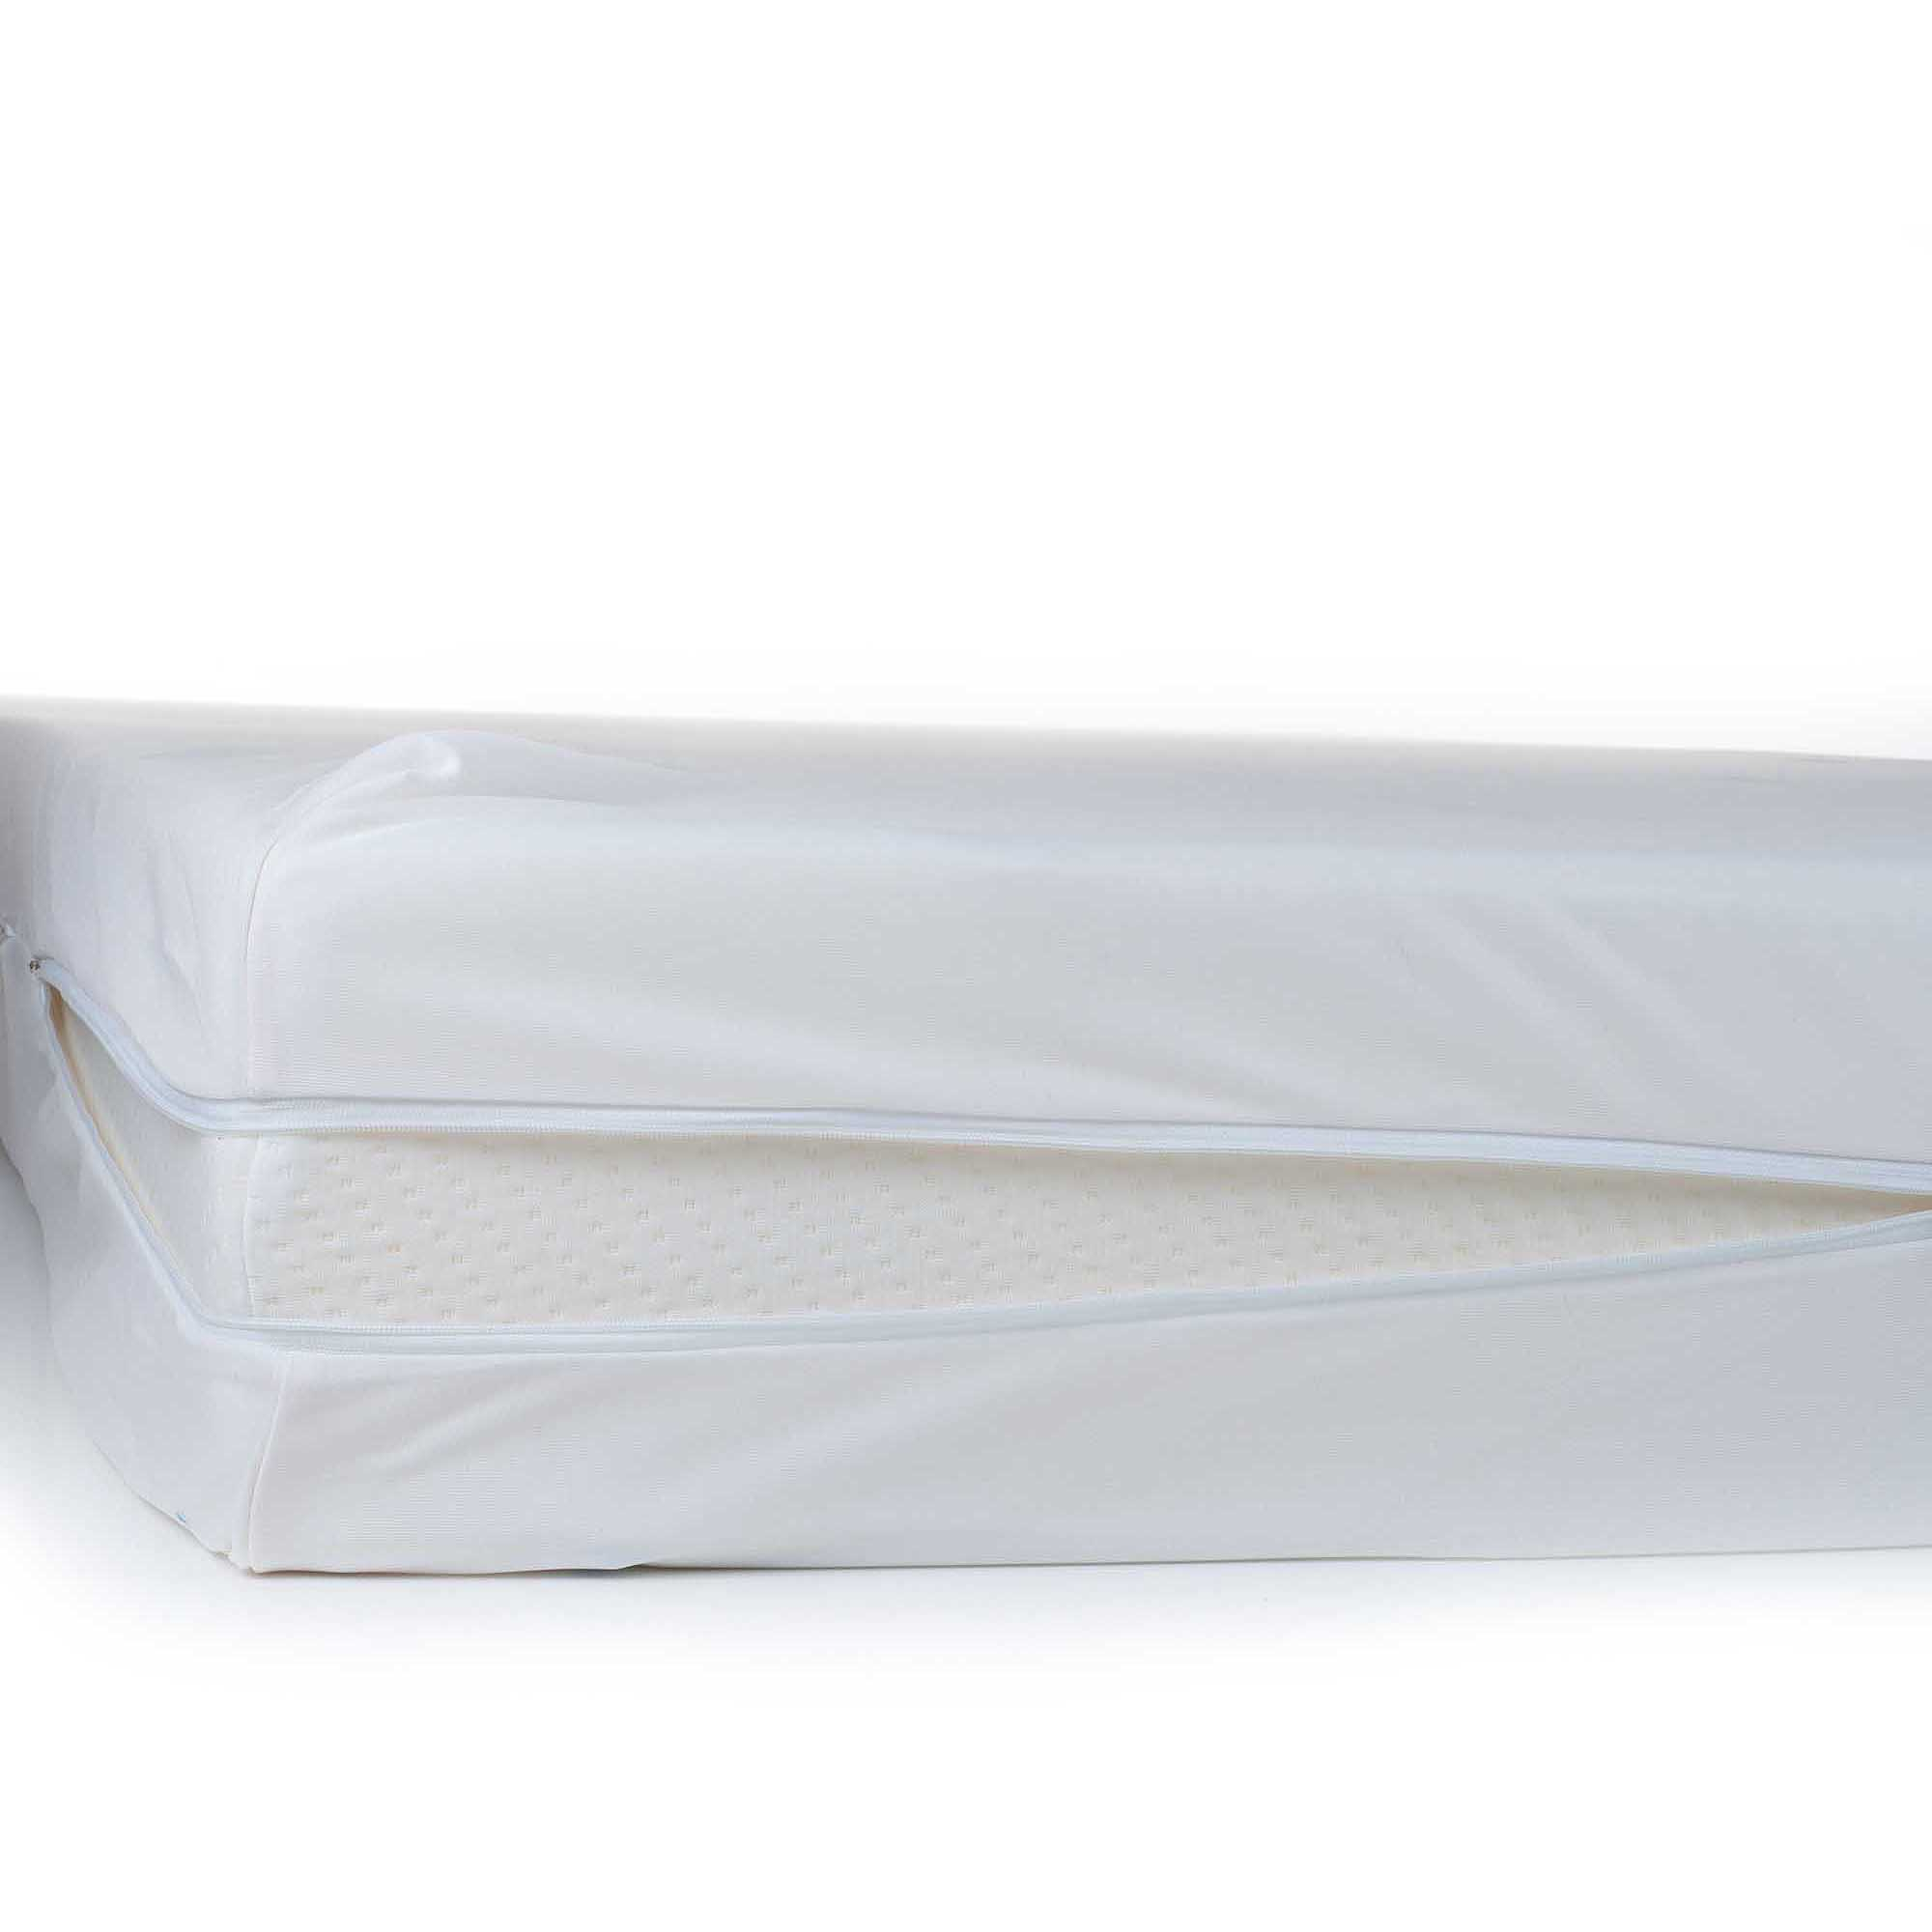 remedy bed mattress encasement cover twin - Mattress Encasement